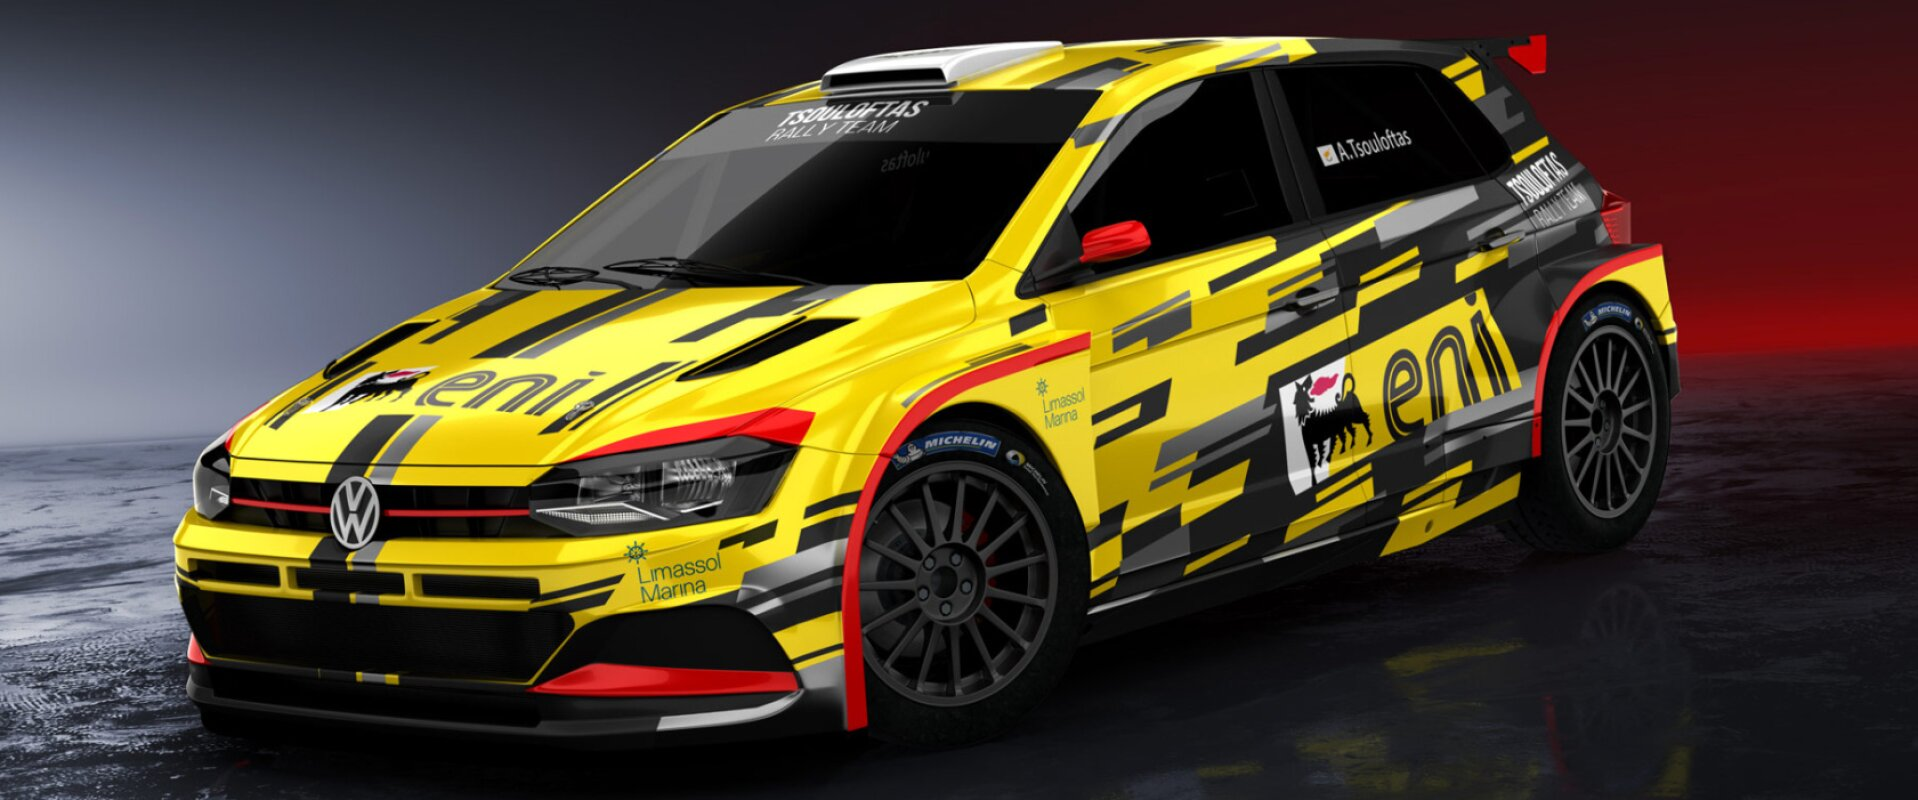 yellow and black matt wrap vinyl design for VW Motorsport